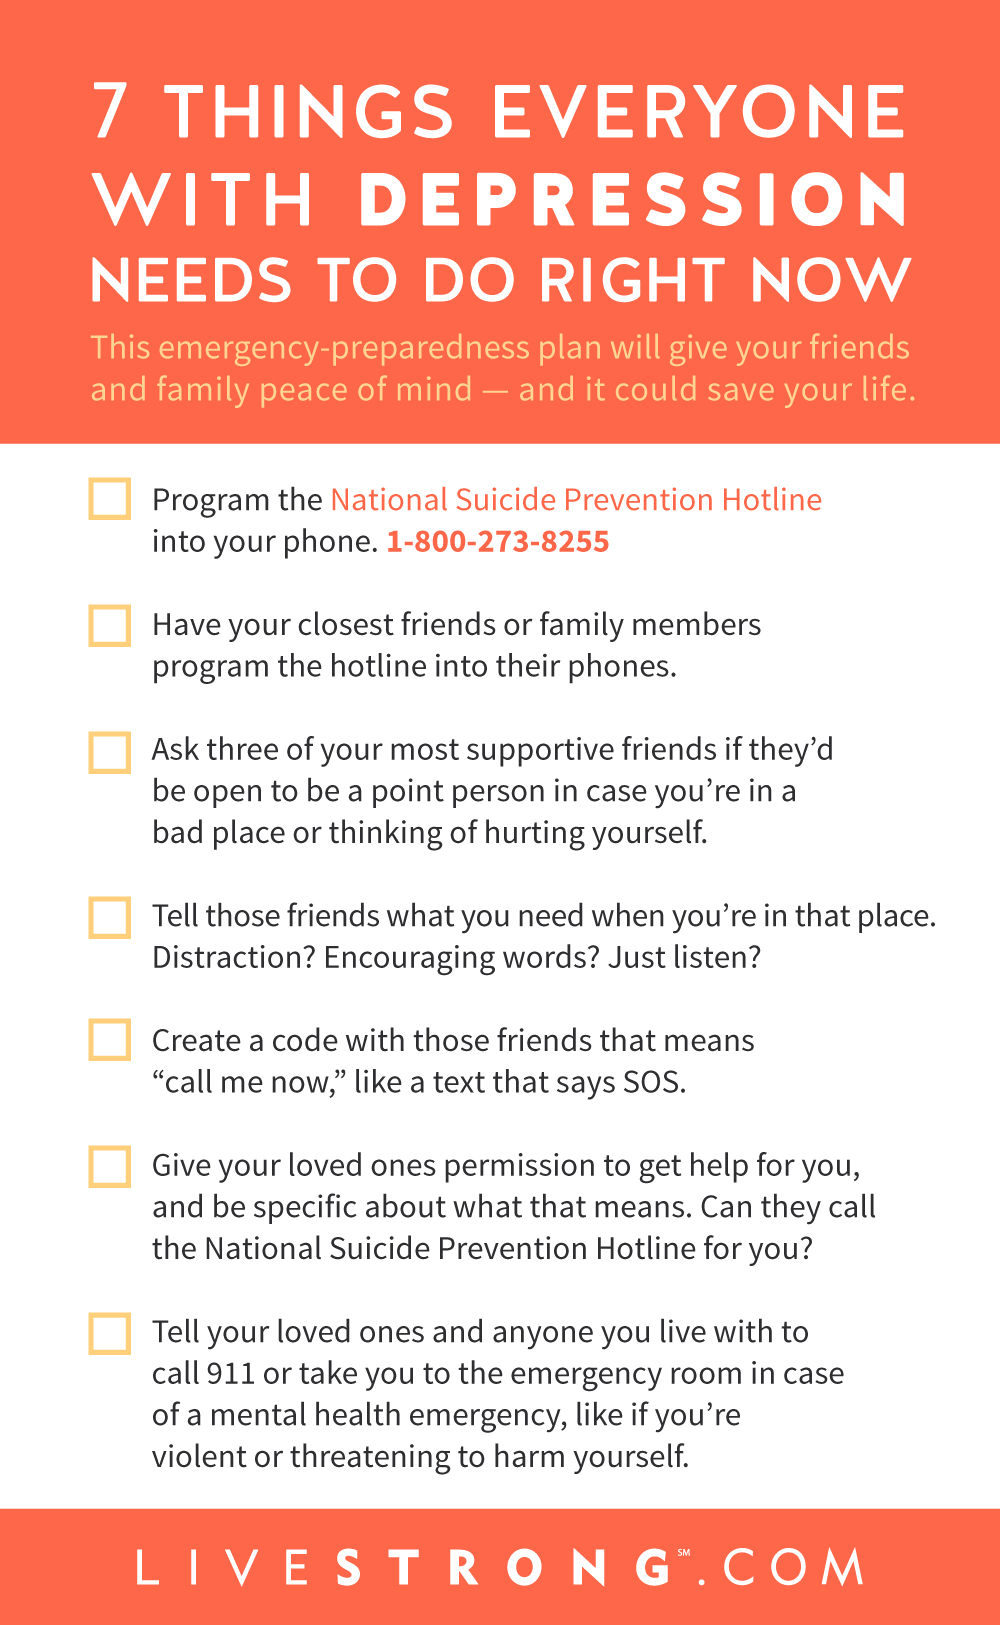 Some things to remember in the aftermath of a natural disaster